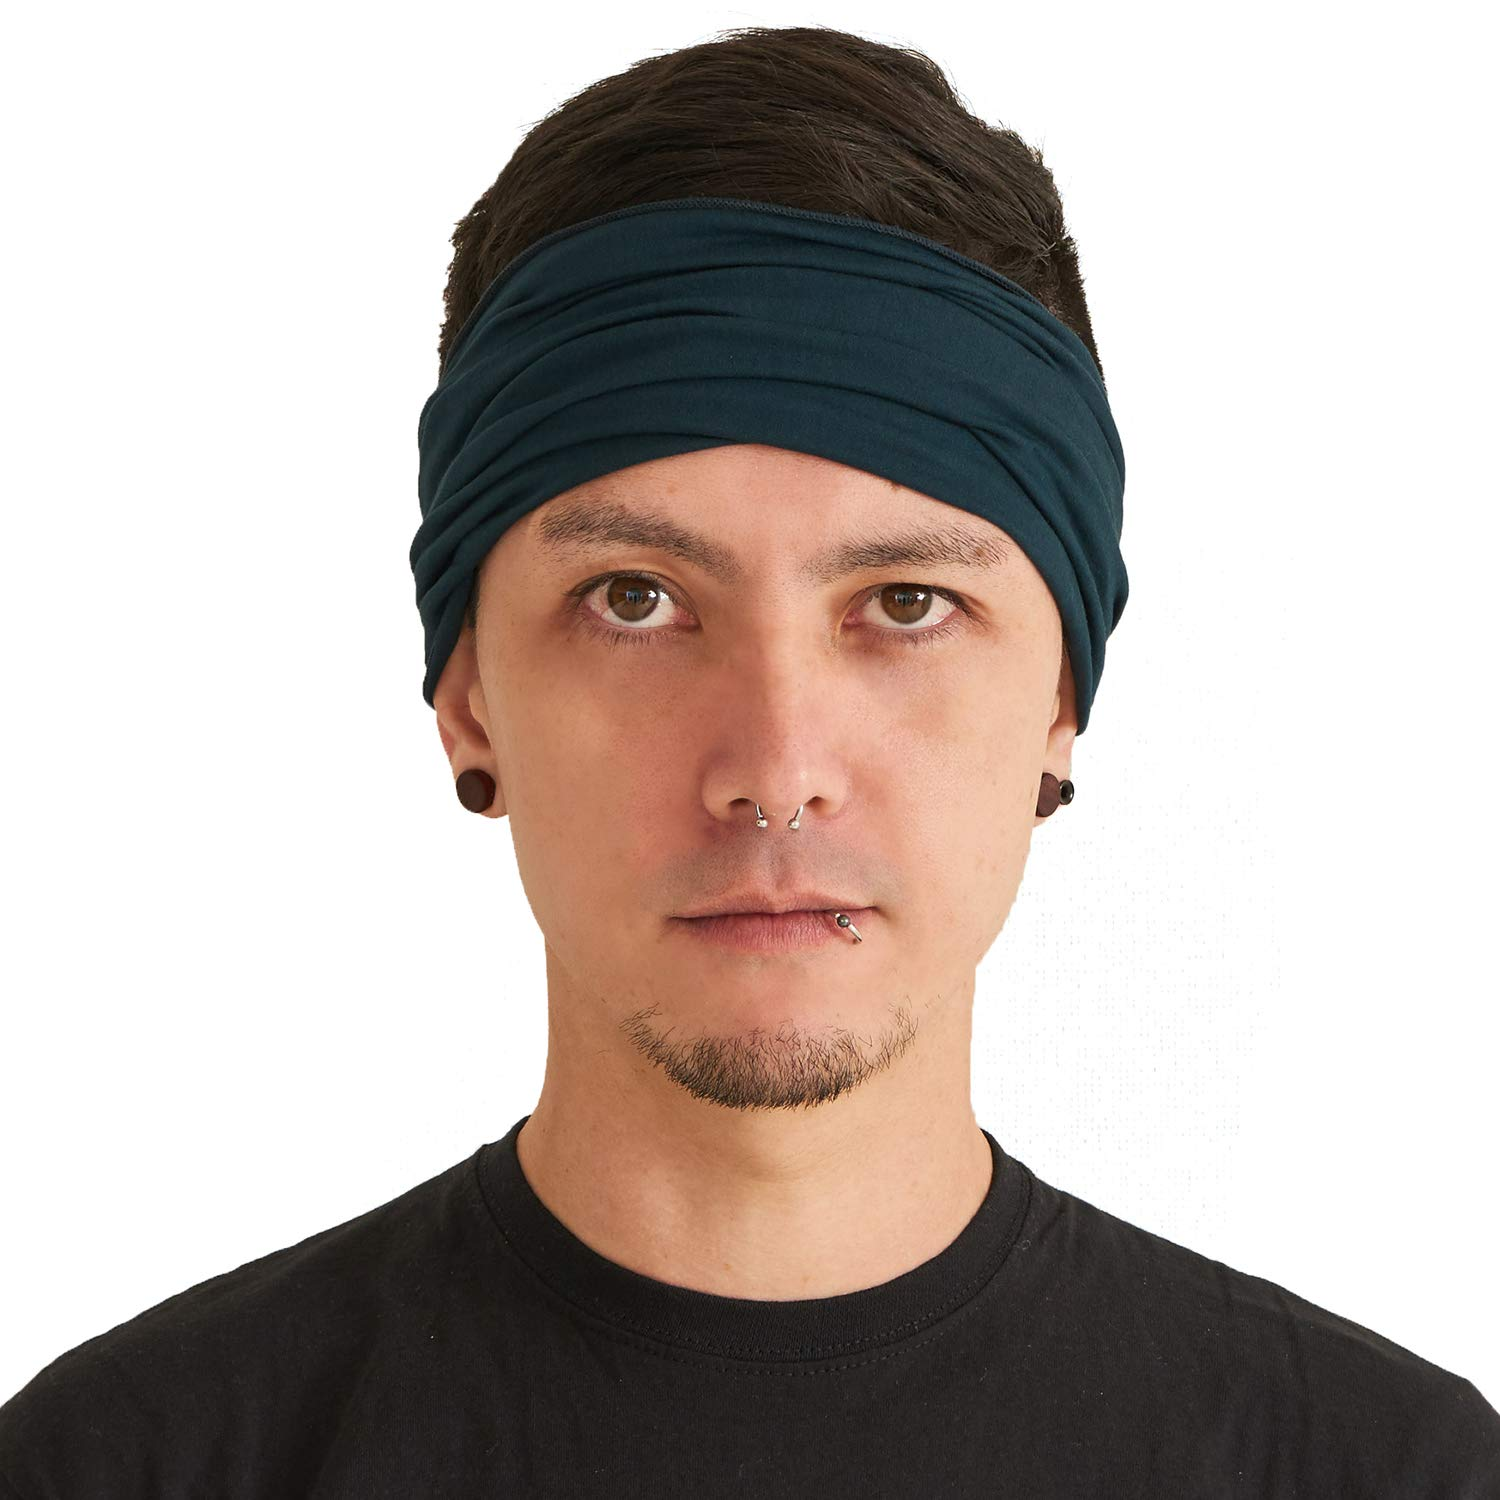 Blue Green Japanese Bandana Headbands for Men and Women – Comfortable Head Bands with Elastic Secure Snug Fit Ideal Runners Fitness Sports Football Tennis Stylish Lightweight M by CCHARM (Image #1)